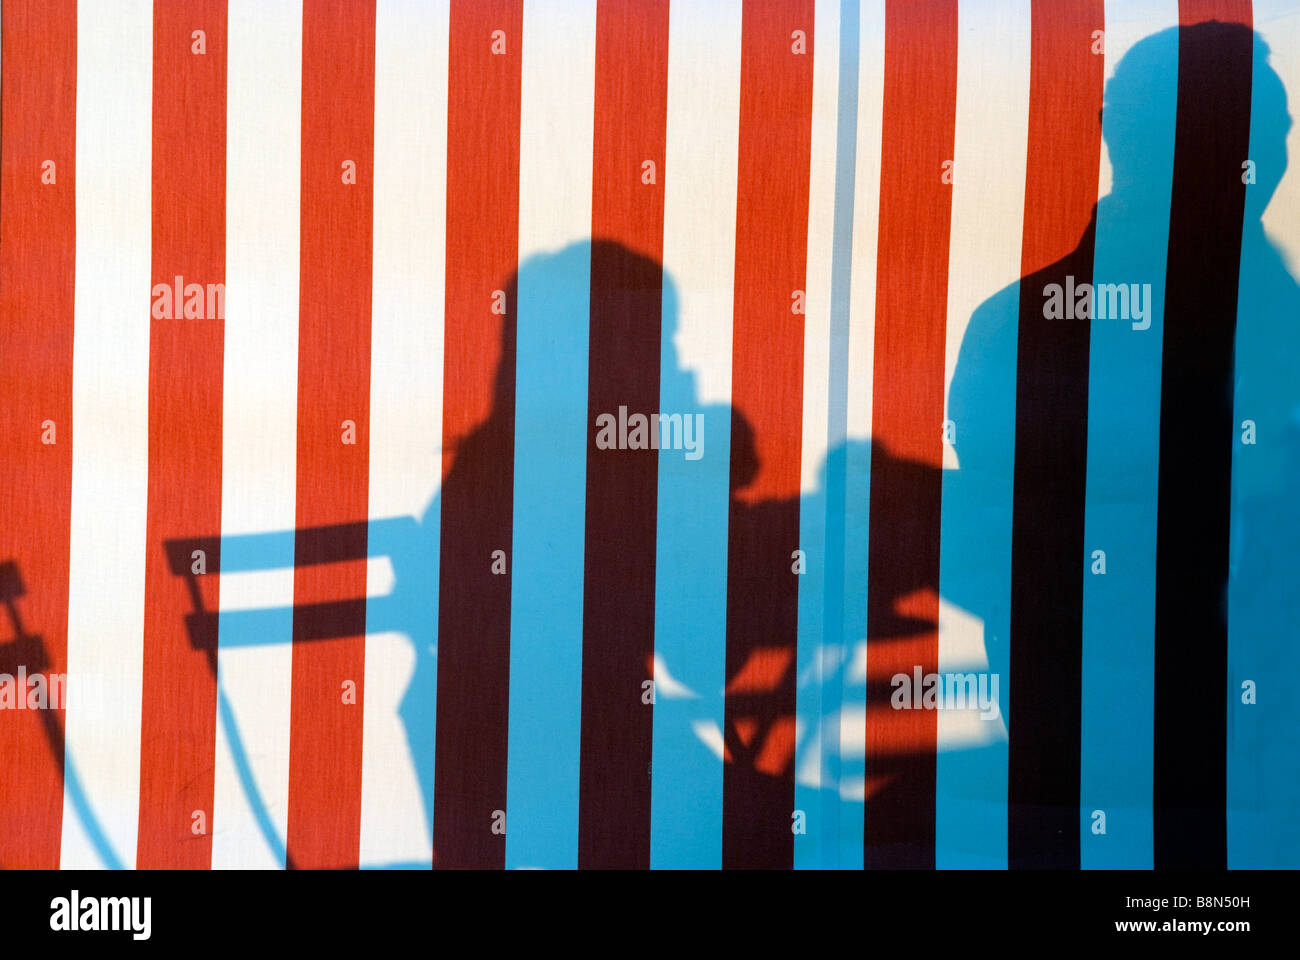 silhouettes of people at cafe projected onto red and white striped tent in sun - Stock Image